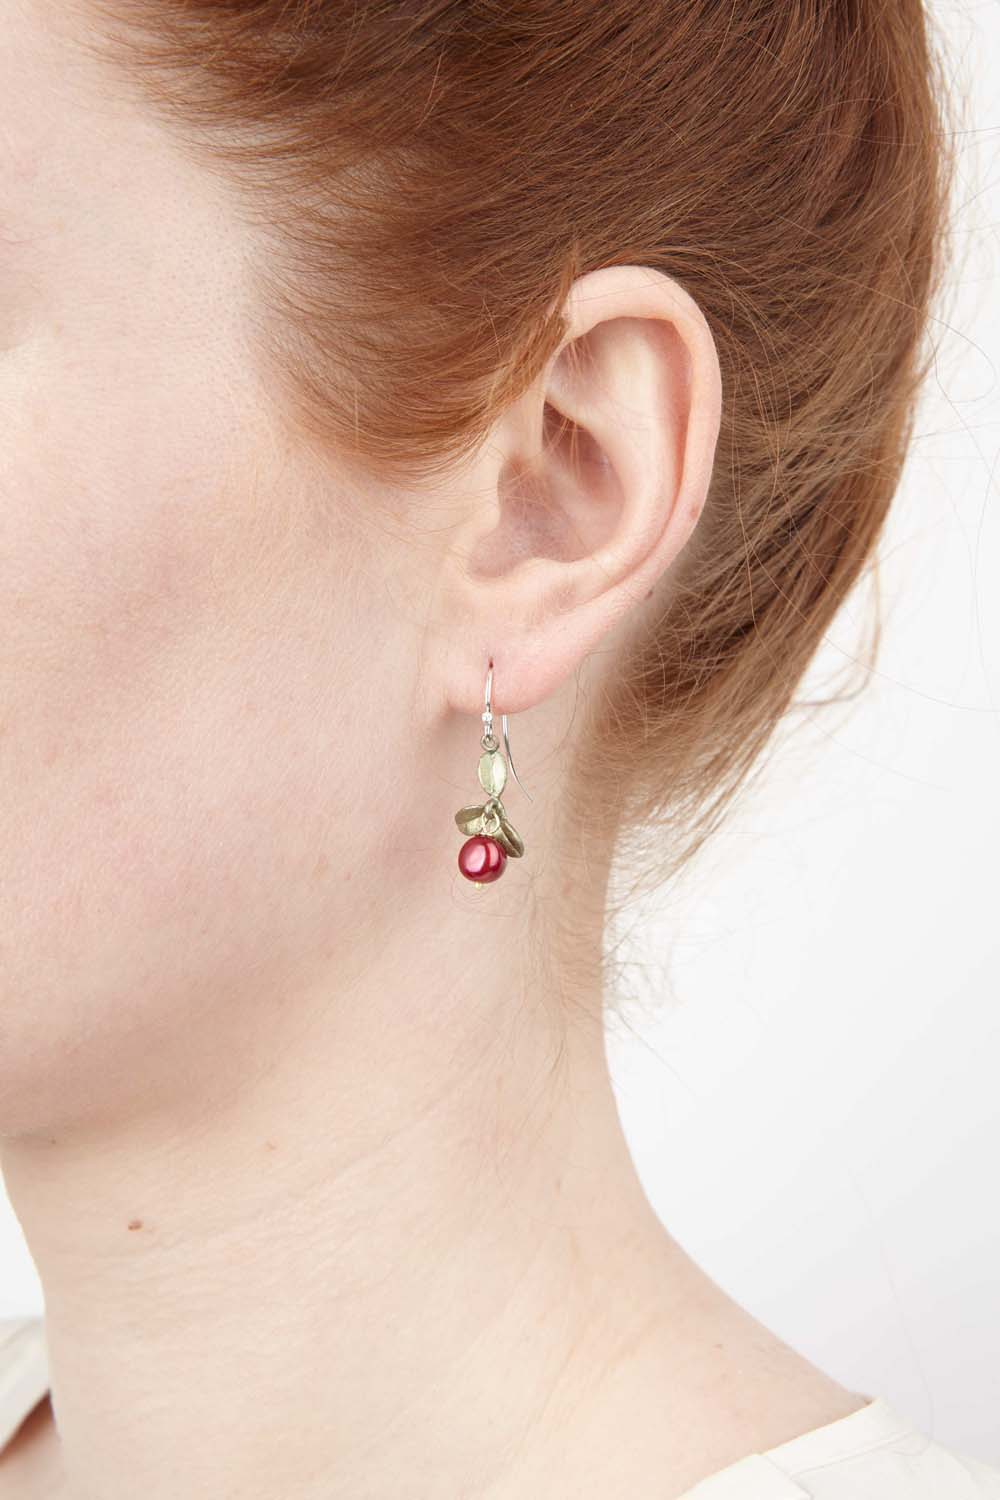 Cranberry Earrings - Wire Drop